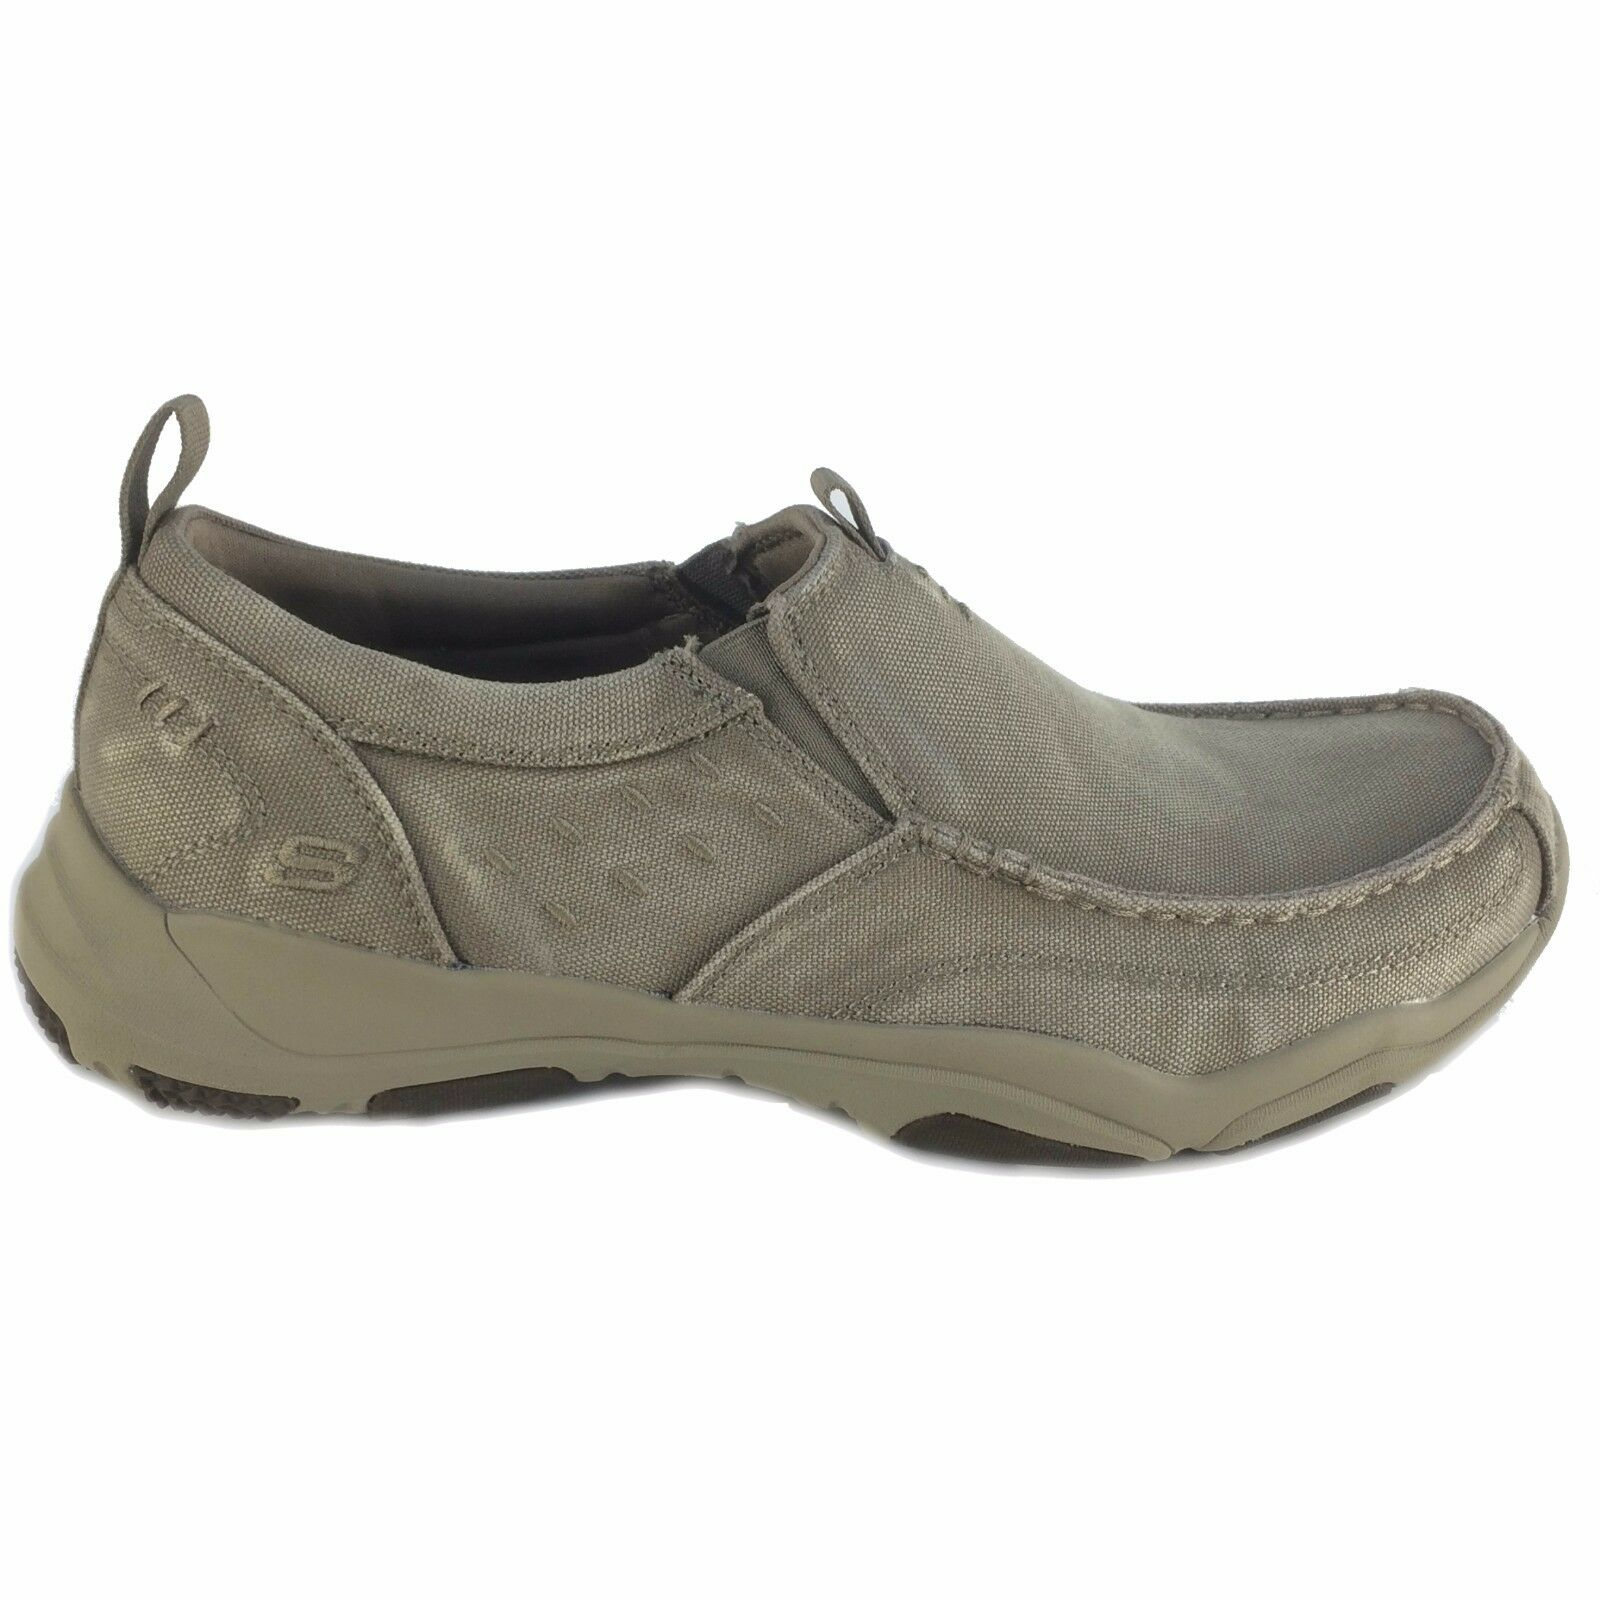 Skechers, 64970 TPE taupe, USA Homme Larson Berto Slip-On Mocassins